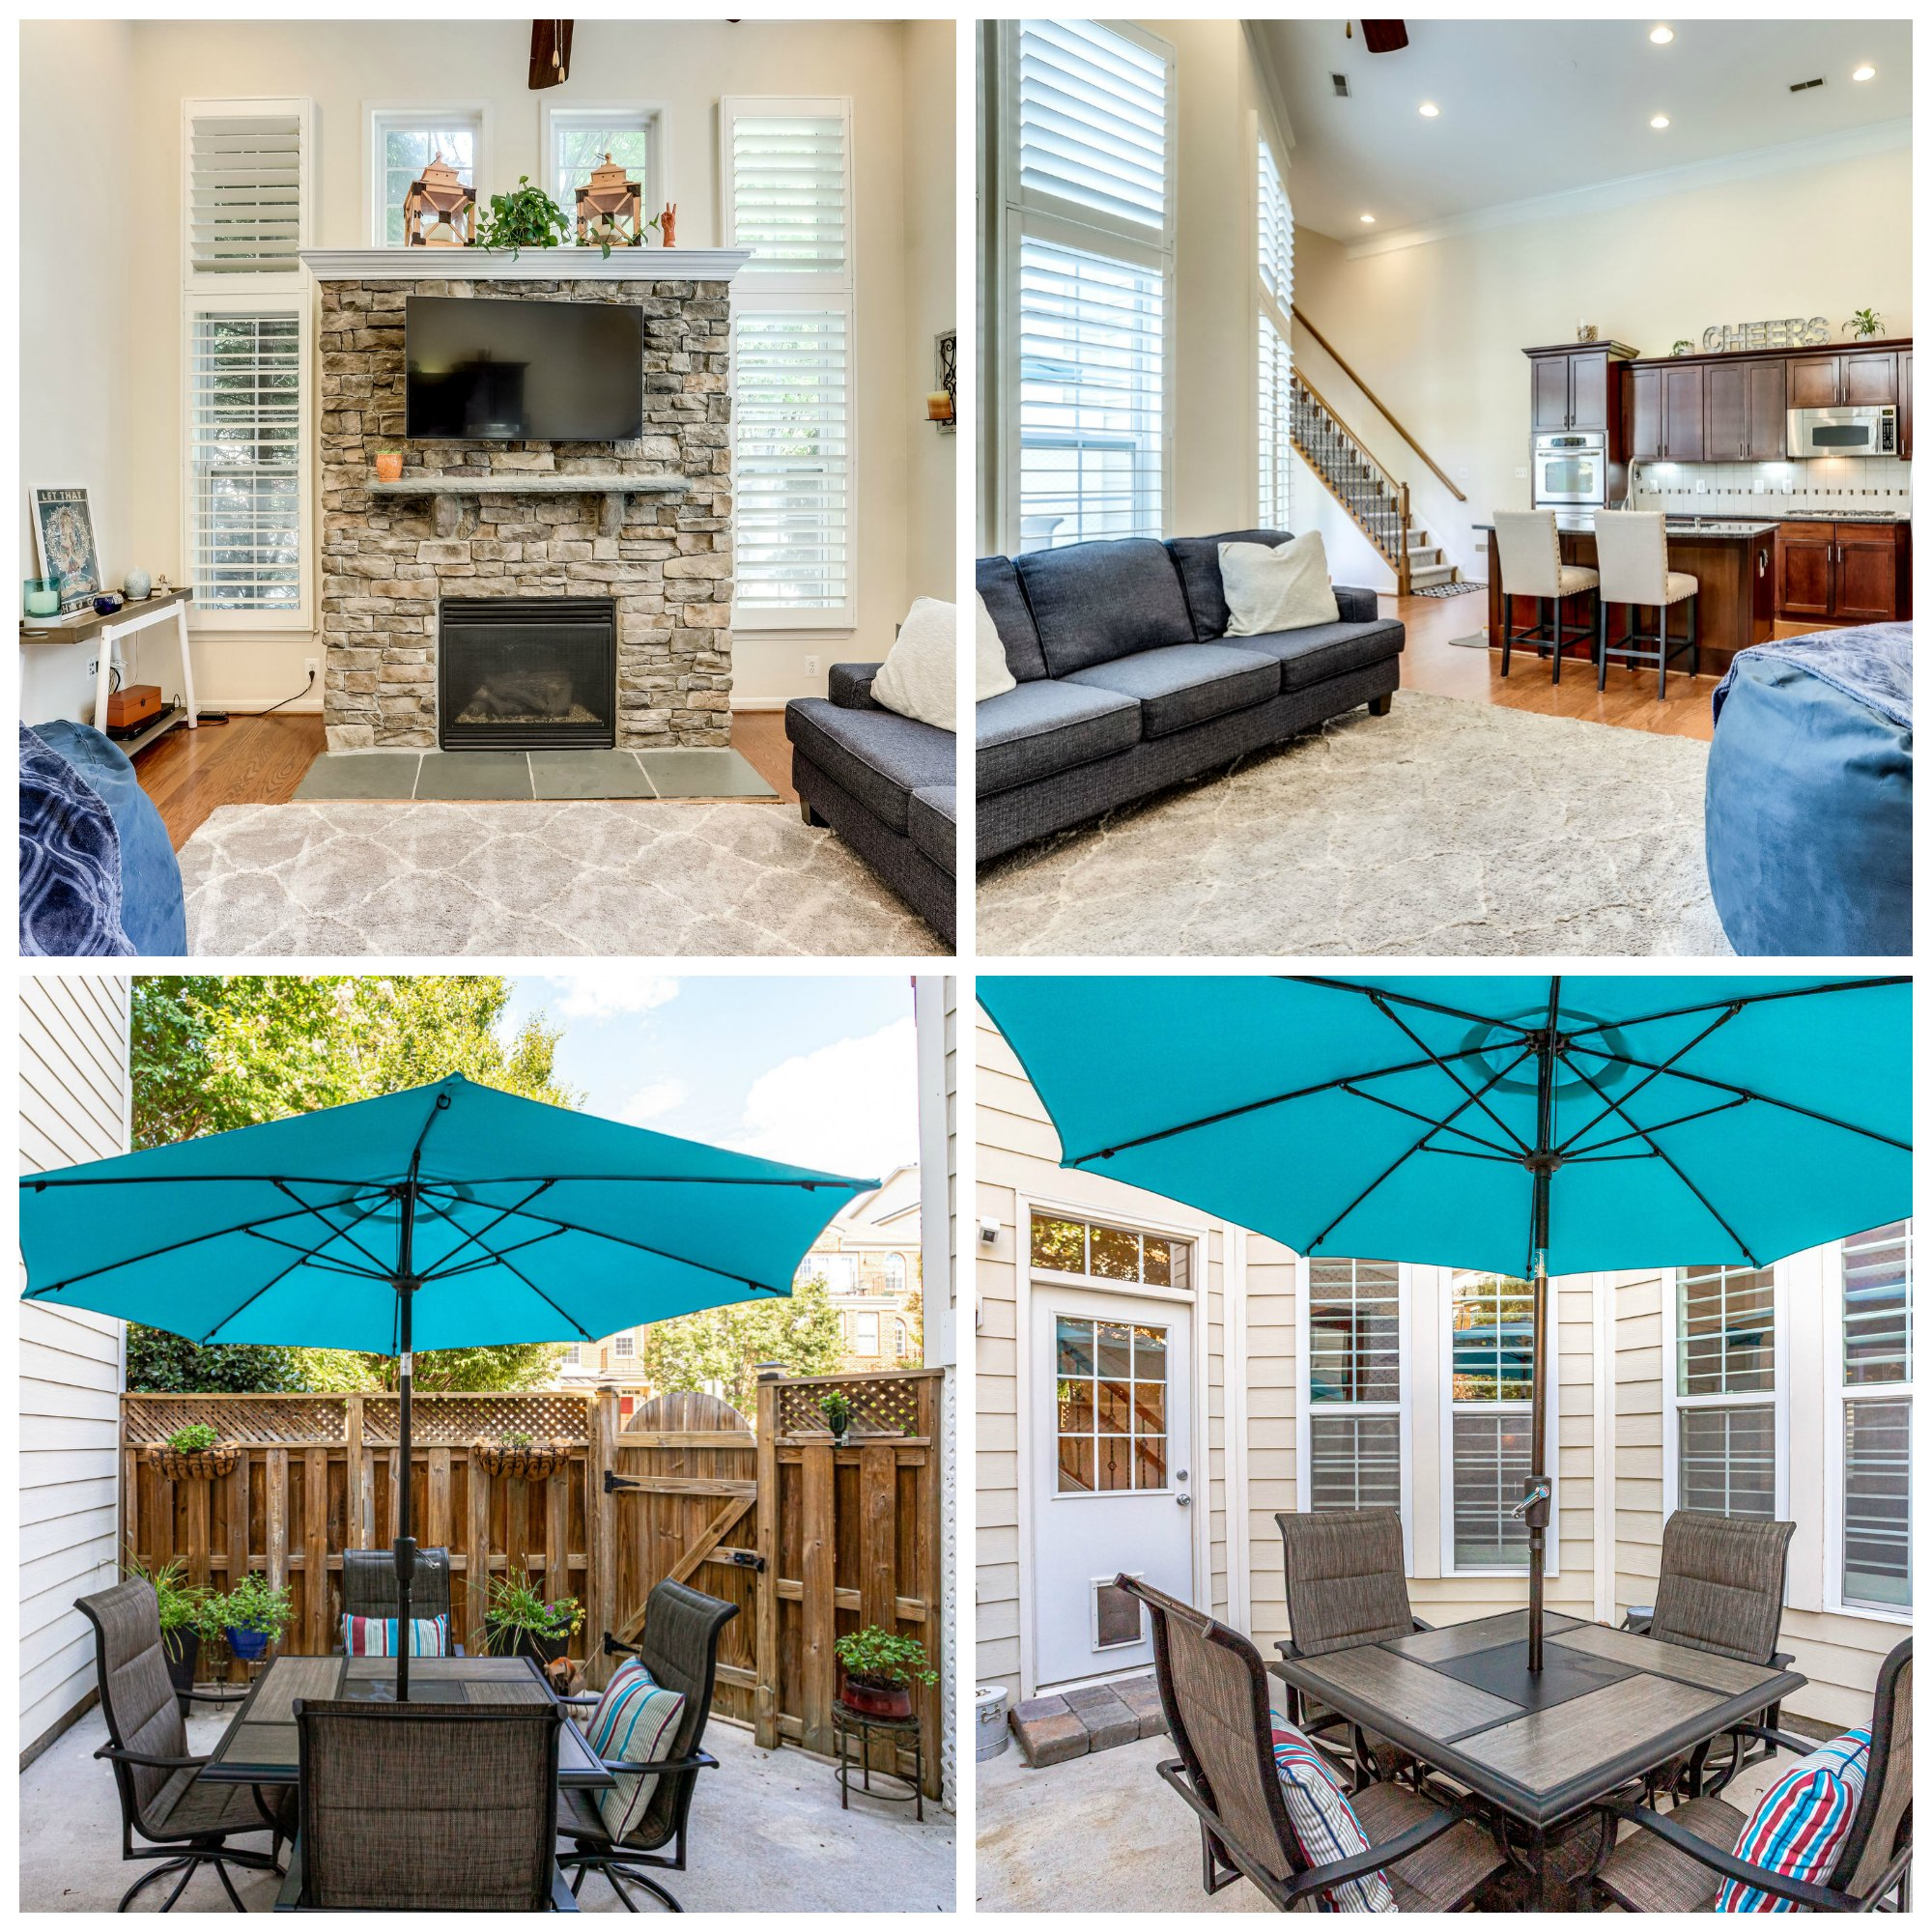 43595 Popes Creek Sq -Lansdowne Town Center- Family Room and Courtyard